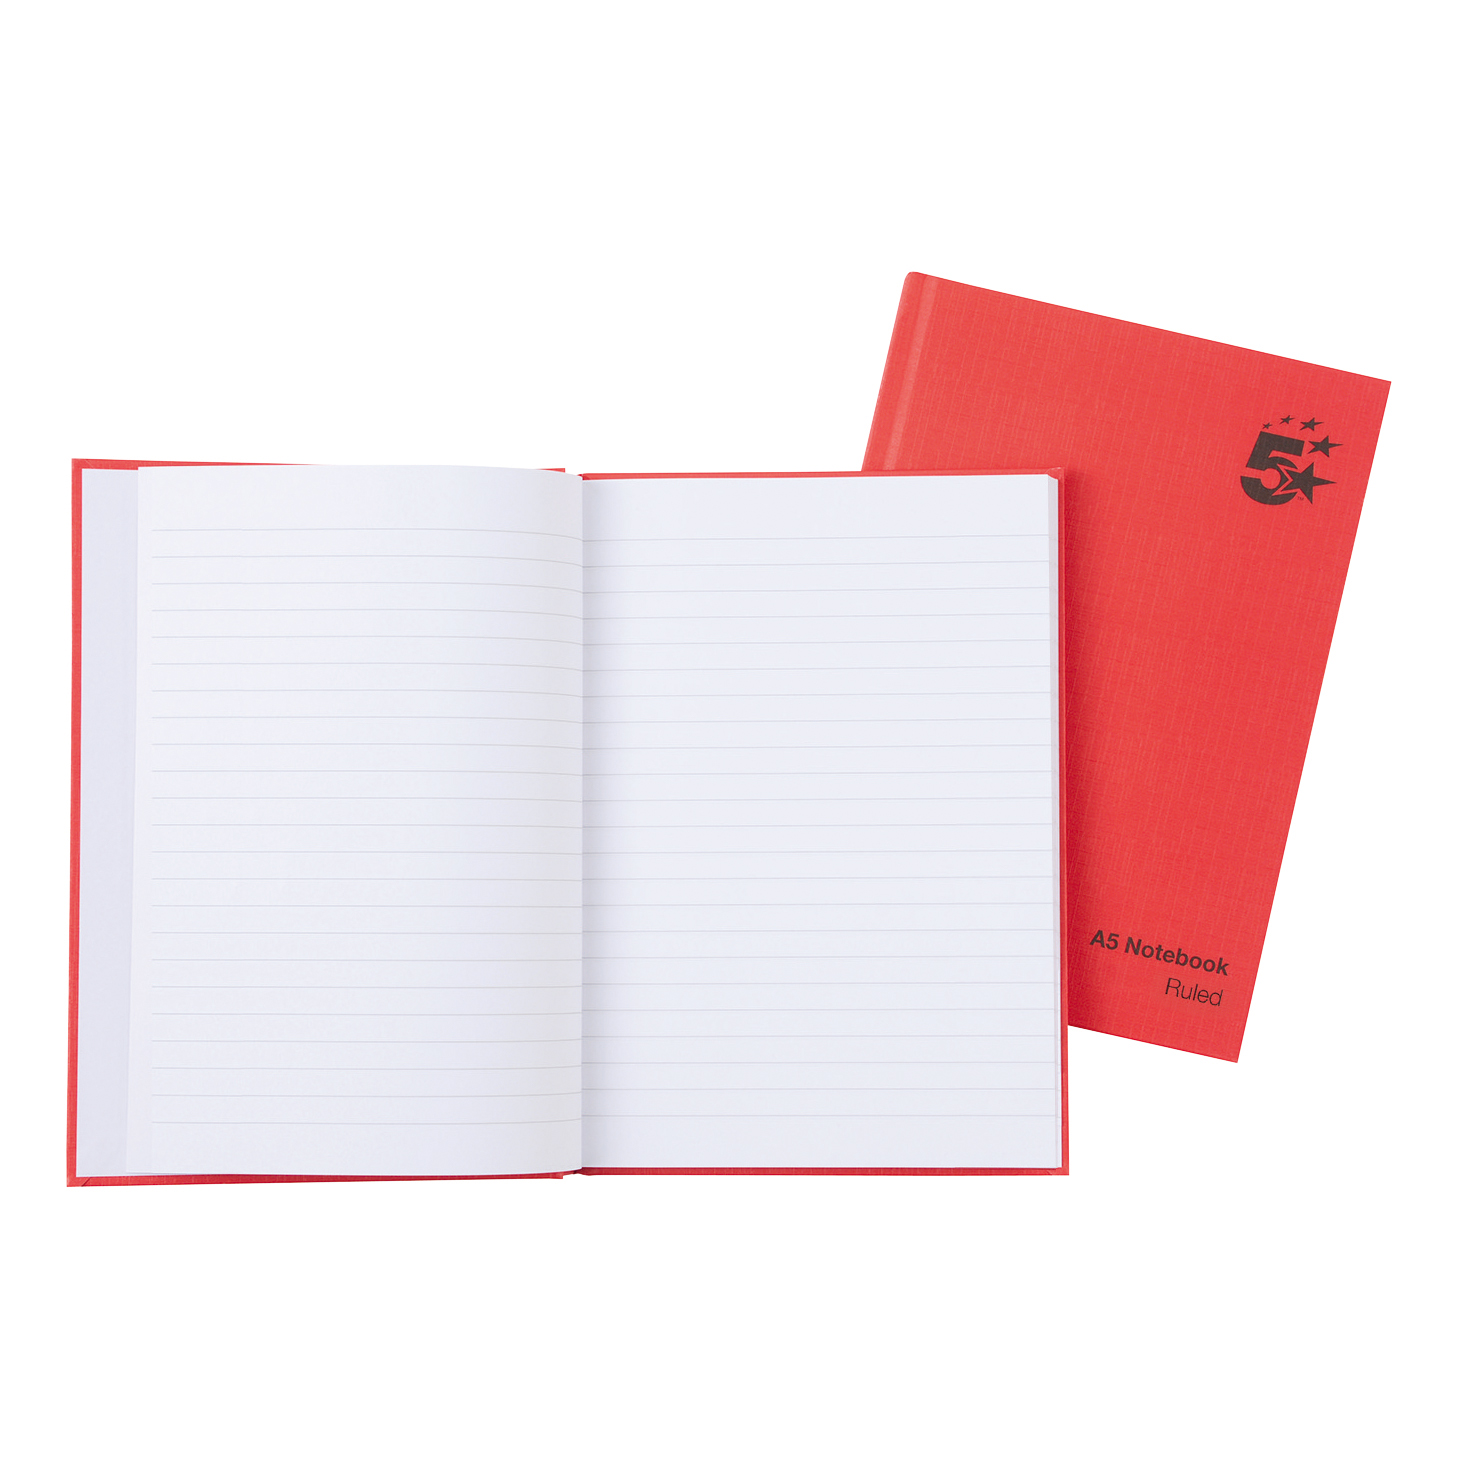 Image for 5 Star Office Manuscript Notebook Casebound 70gsm Ruled 192pp A5 Red [Pack 5]